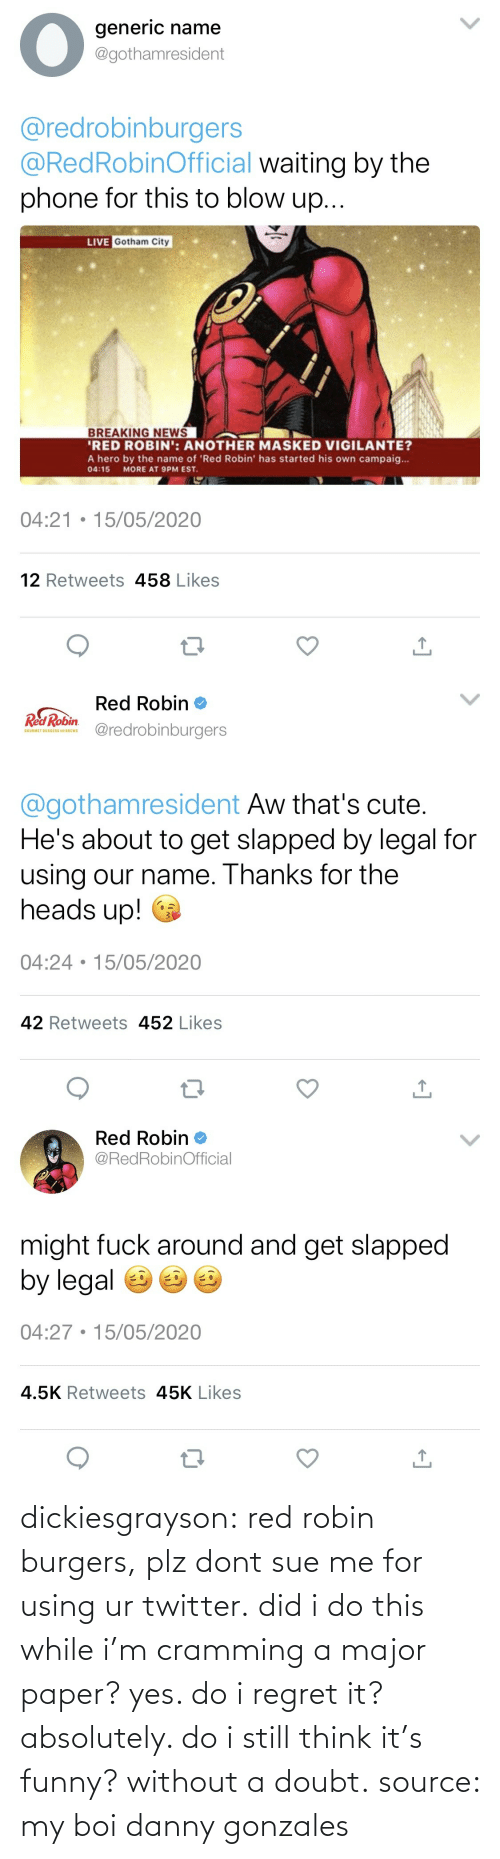 robin: dickiesgrayson:  red robin burgers, plz dont sue me for using ur twitter. did i do this while i'm cramming a major paper? yes. do i regret it? absolutely. do i still think it's funny? without a doubt. source: my boi danny gonzales